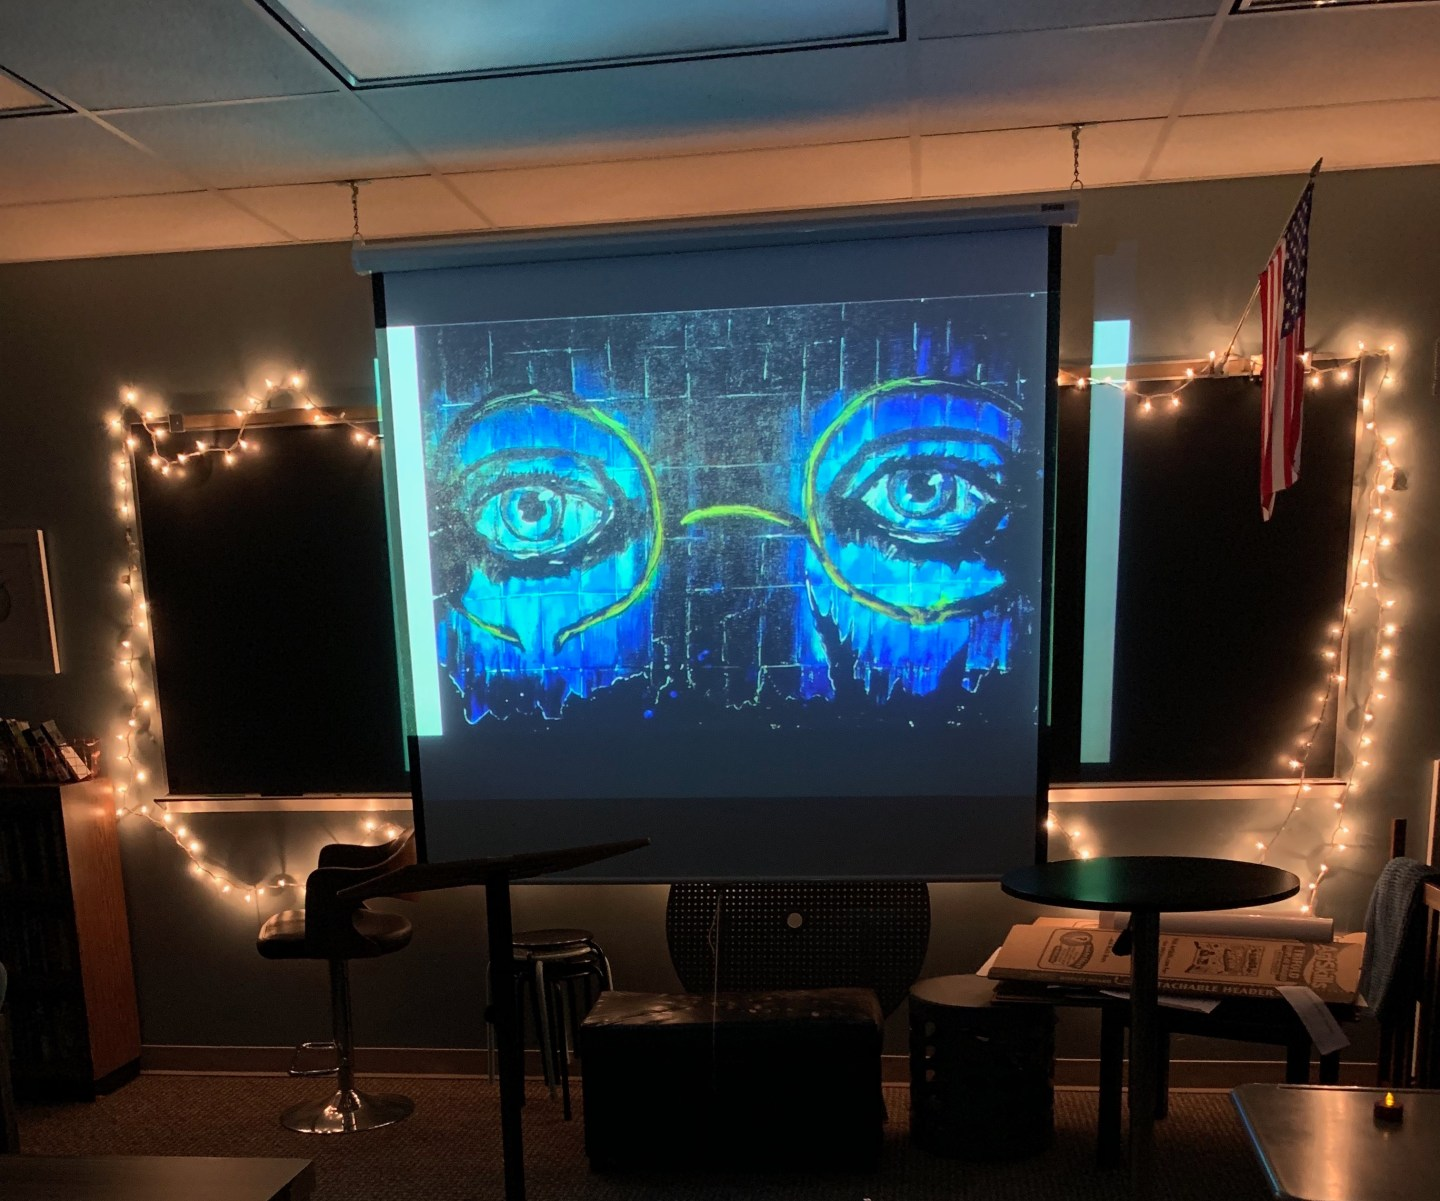 I use the ominous eyes of T.J. Eckleberg to set the scene for our Chapters 1-3 Escape Room!